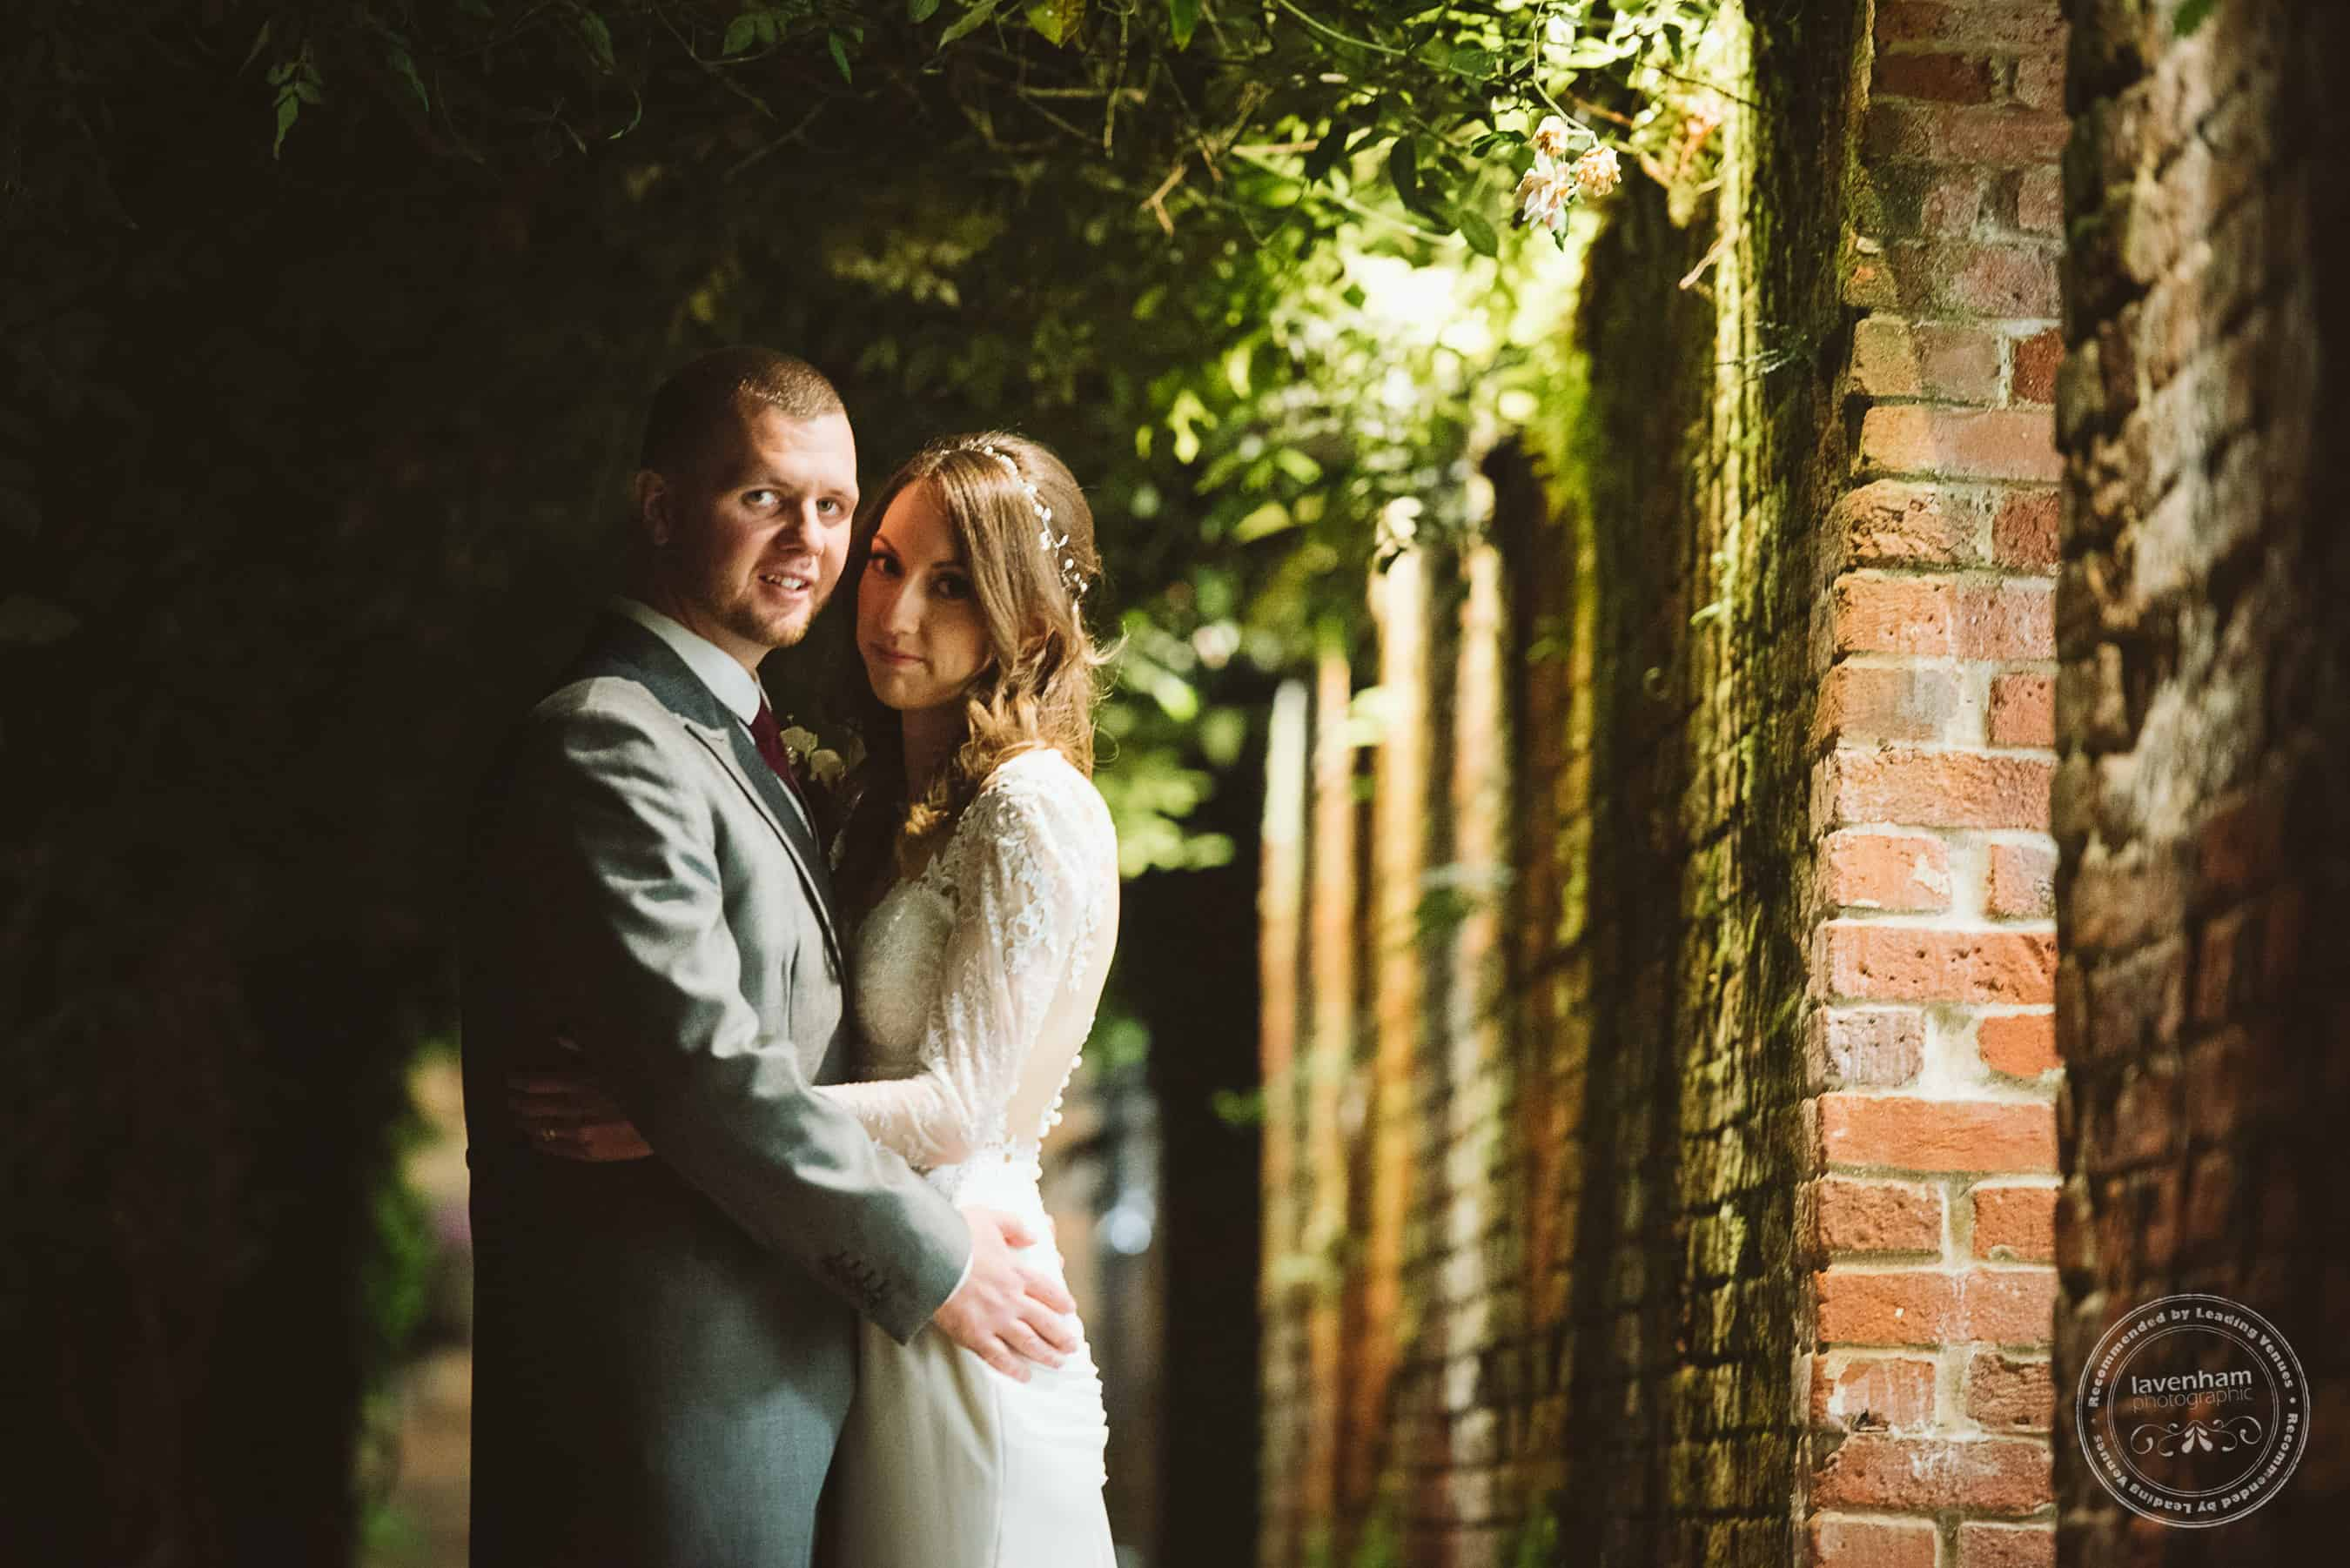 041118 Woodhall Manor Wedding Photography by Lavenham Photographic 115